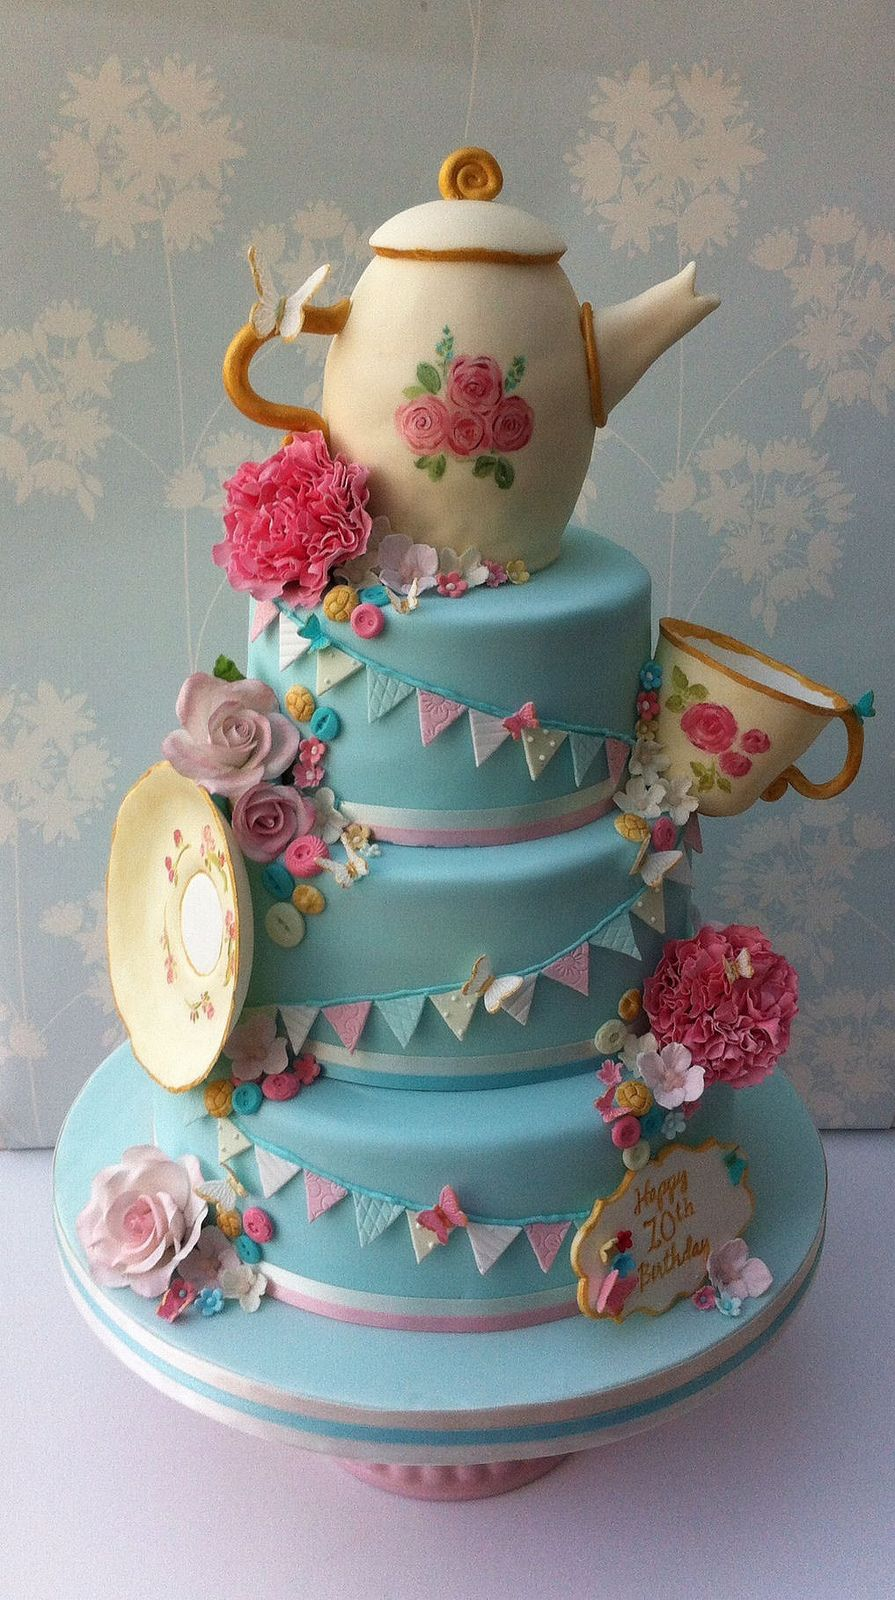 Vintage Tea Party Cake This is the one I want!